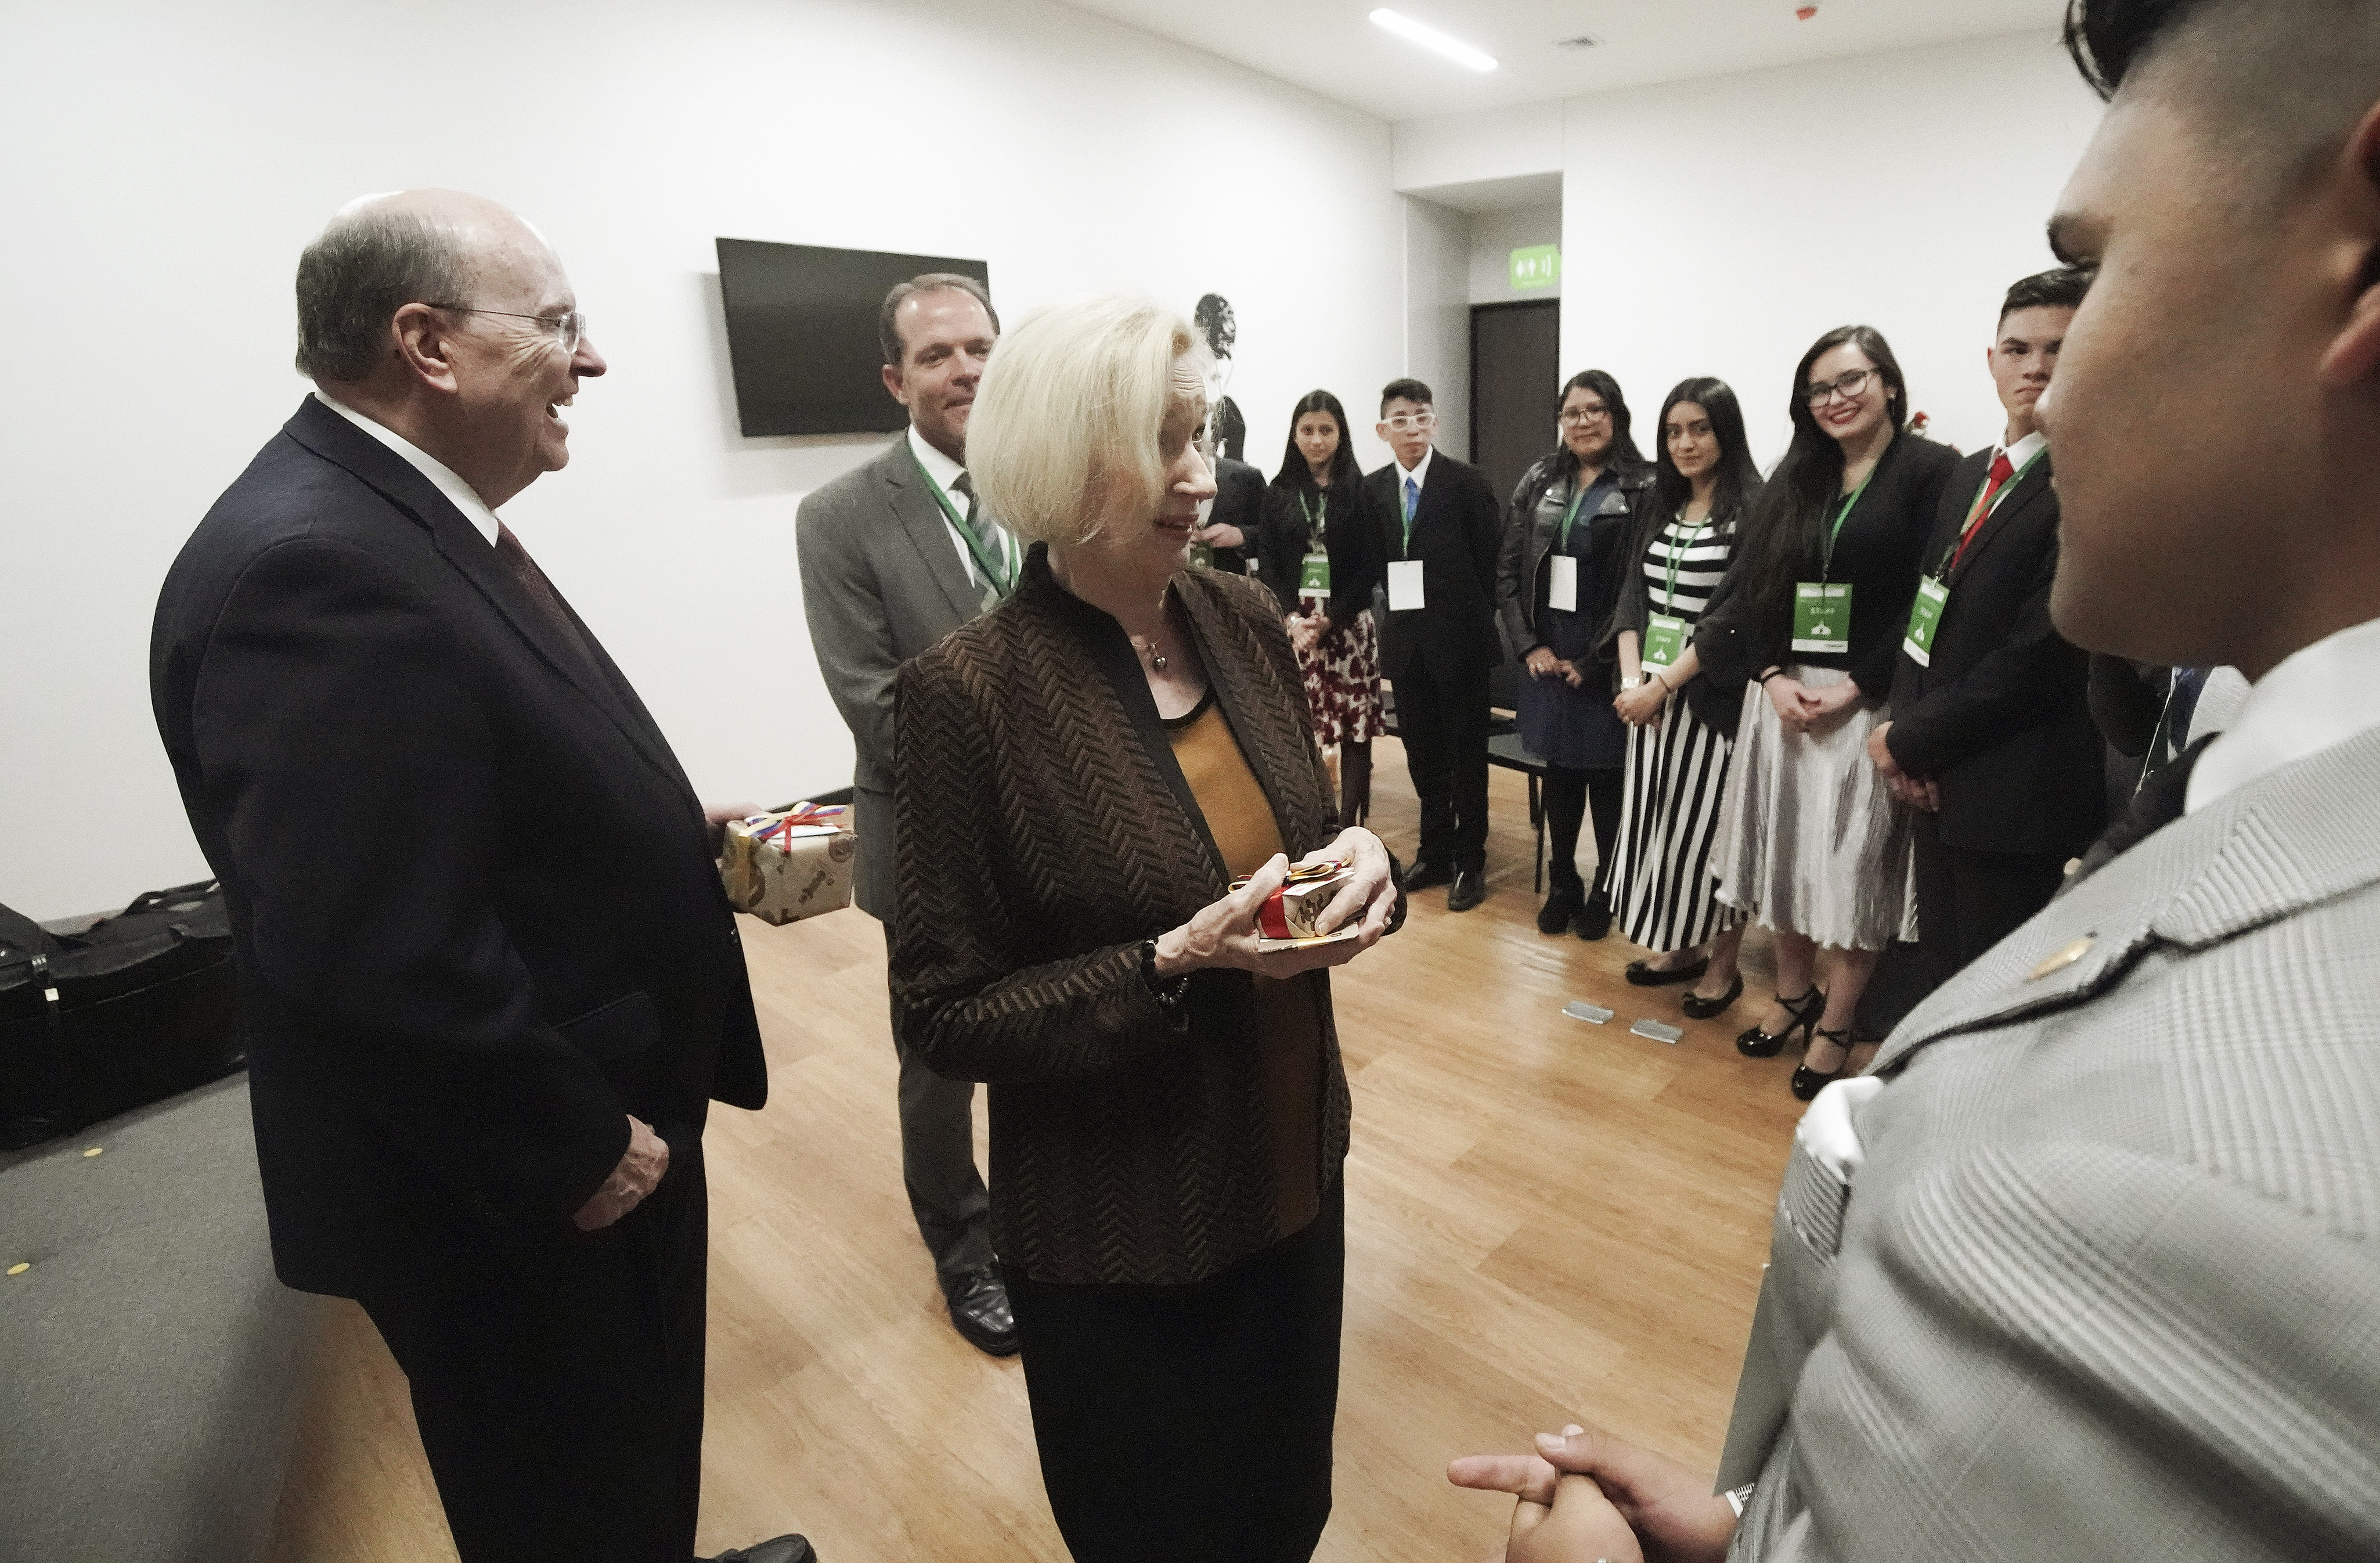 Elder Quentin L. Cook of the Quorum of the Twelve Apostles of The Church of Jesus Christ of Latter-day Saints and his wife, Sister Mary Cook, meet with youth in Bogota, Colombia, on Sunday, Aug. 25, 2019.